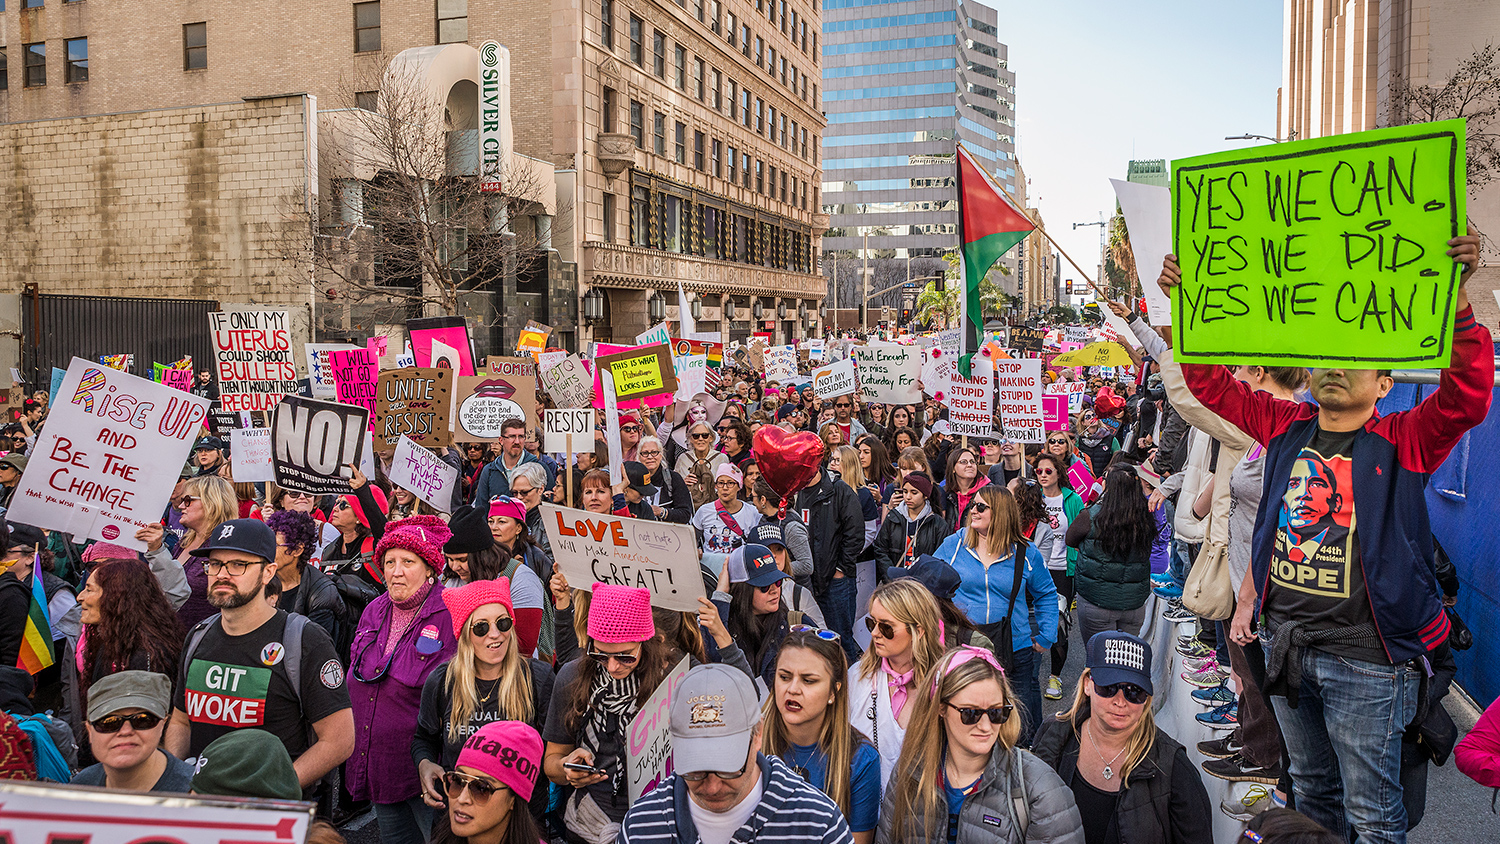 (2017)Only half a block from Pershing Square, roughly an hour into the march,there is no end in sight of the crowd at the front or rear.